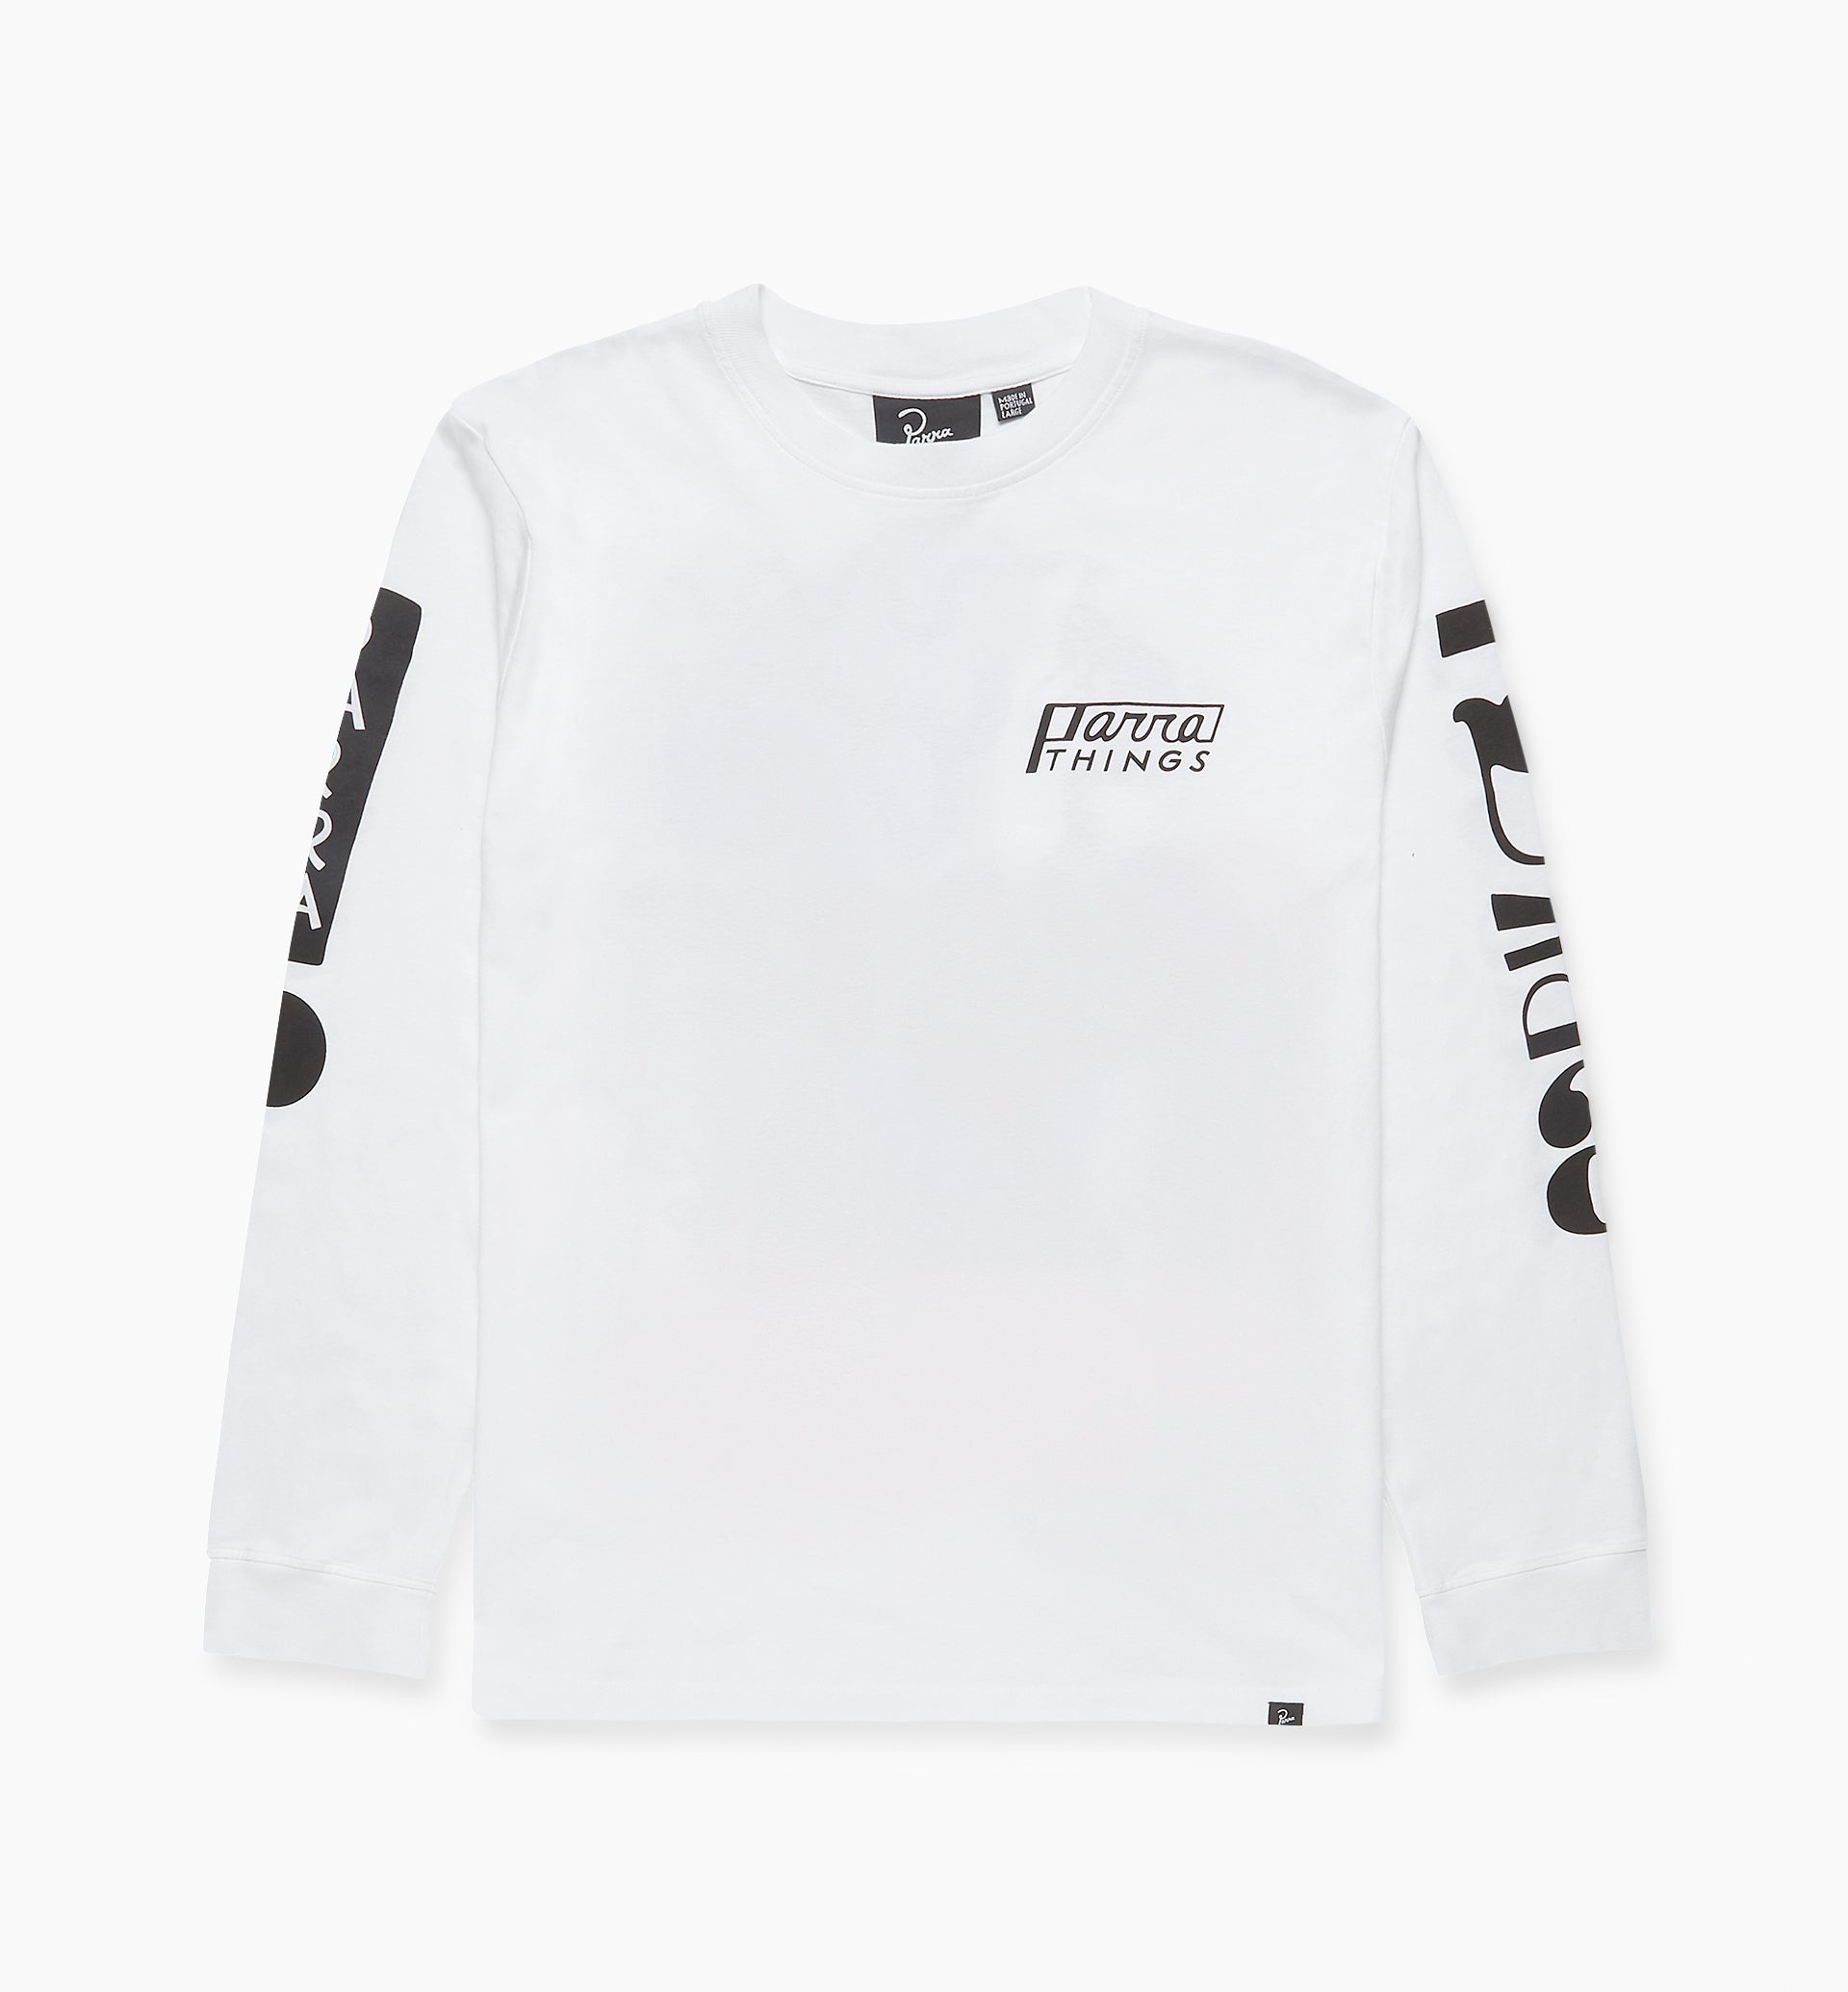 Parra - parra things long sleeve t-shirt